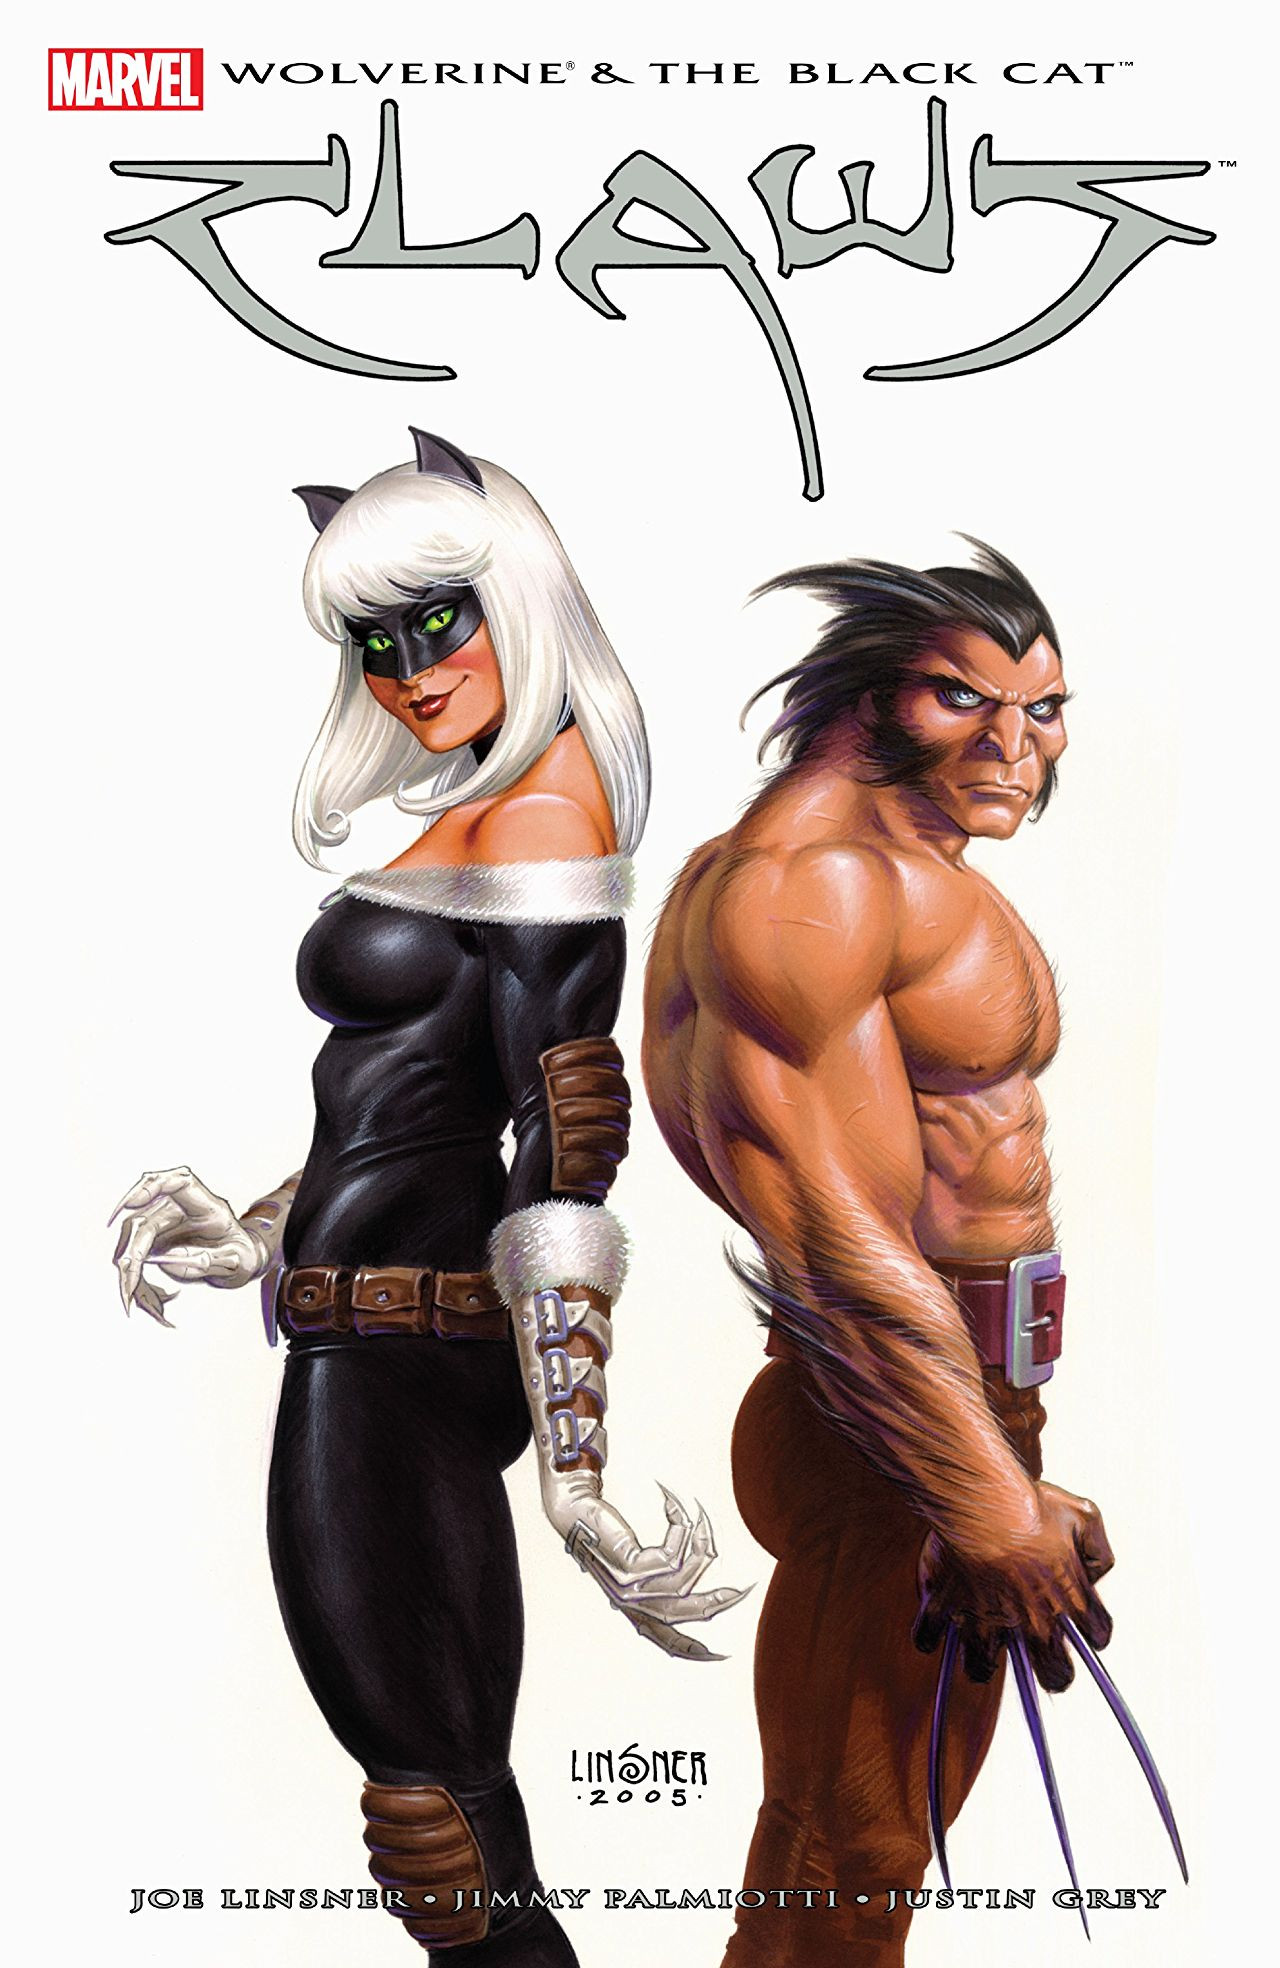 Wolverine & Black Cat: Claws TPB Vol 1 1